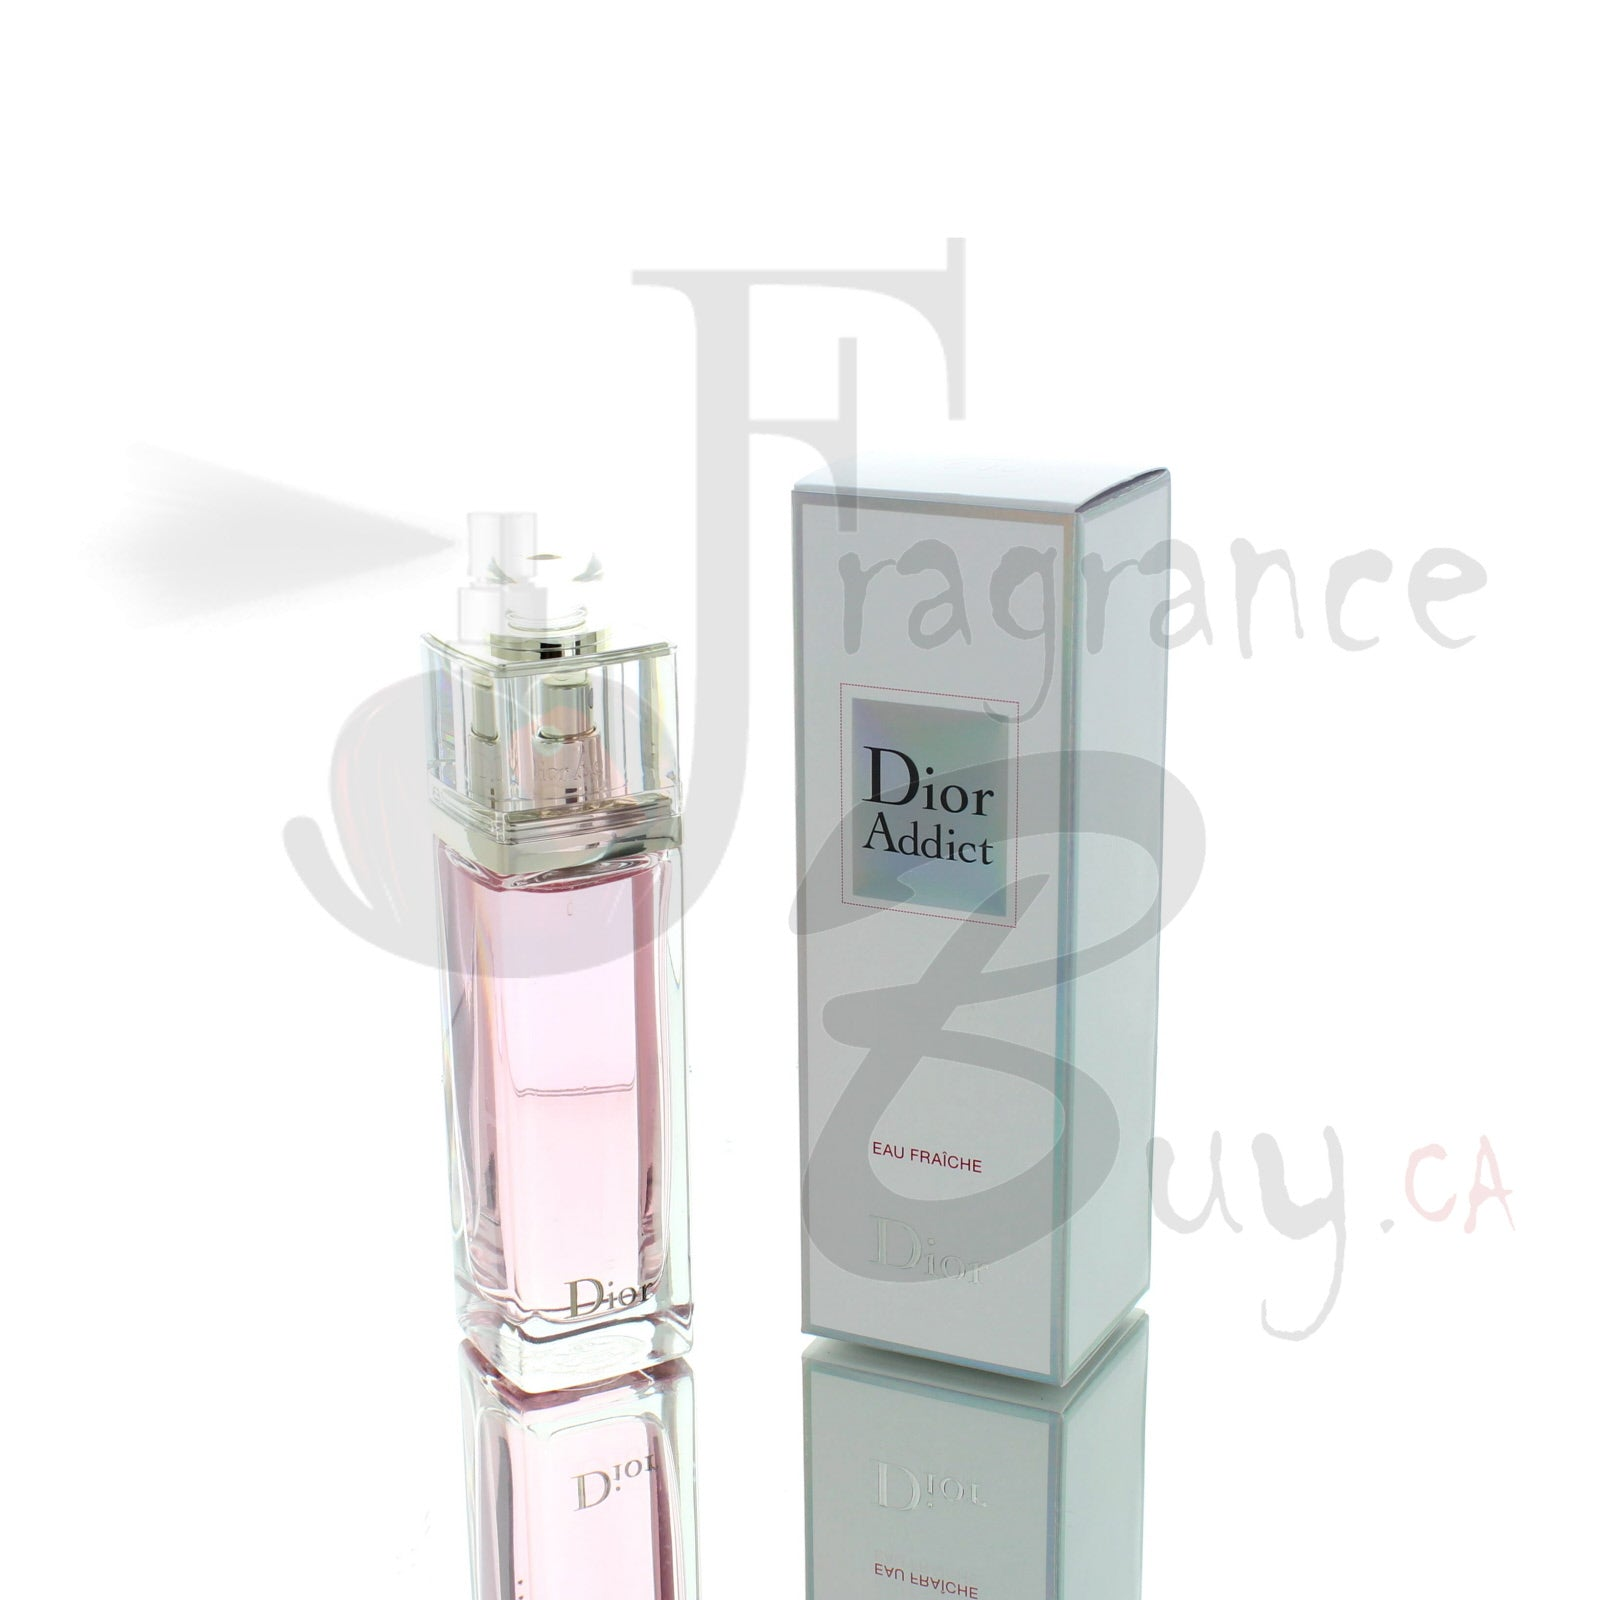 Dior Addict Fraiche (Formerly Dior 2) For Woman